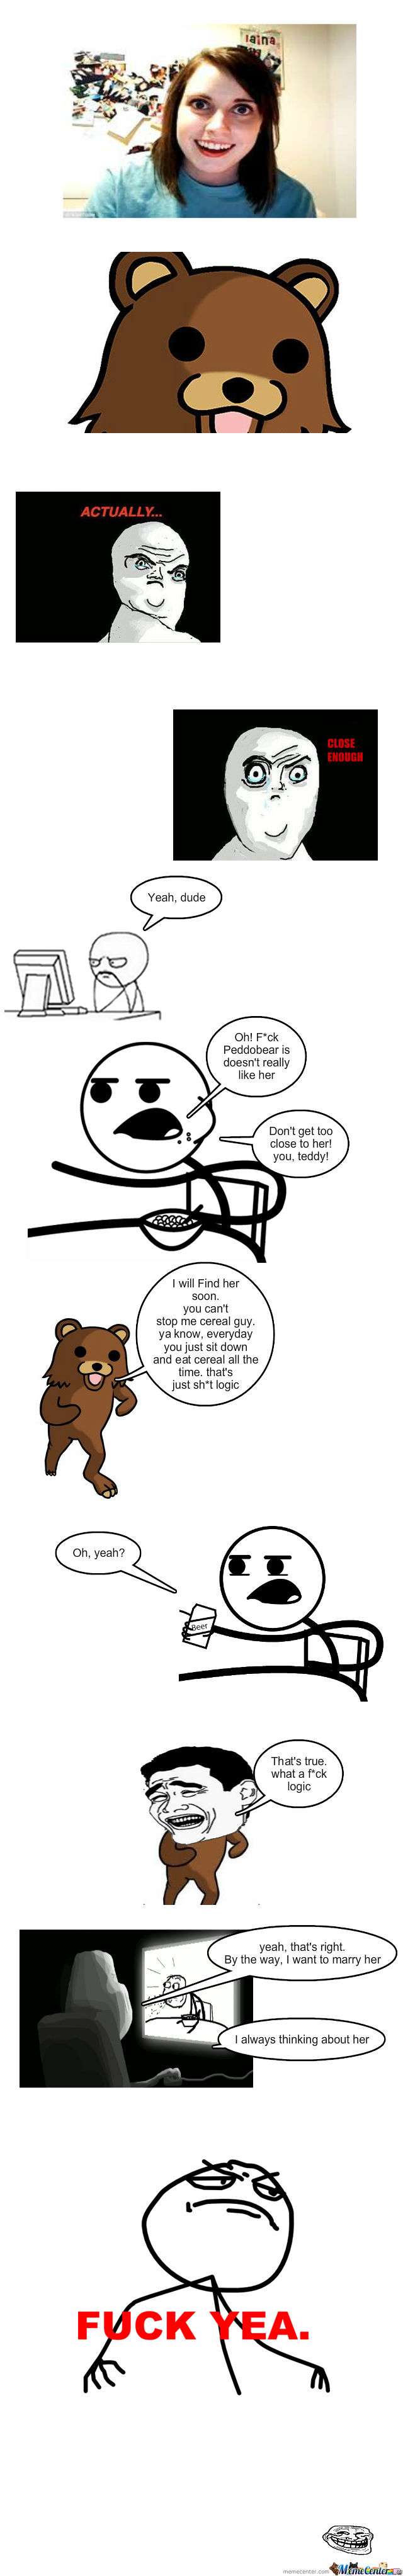 Overly Attached Girlfriend And Peddobear